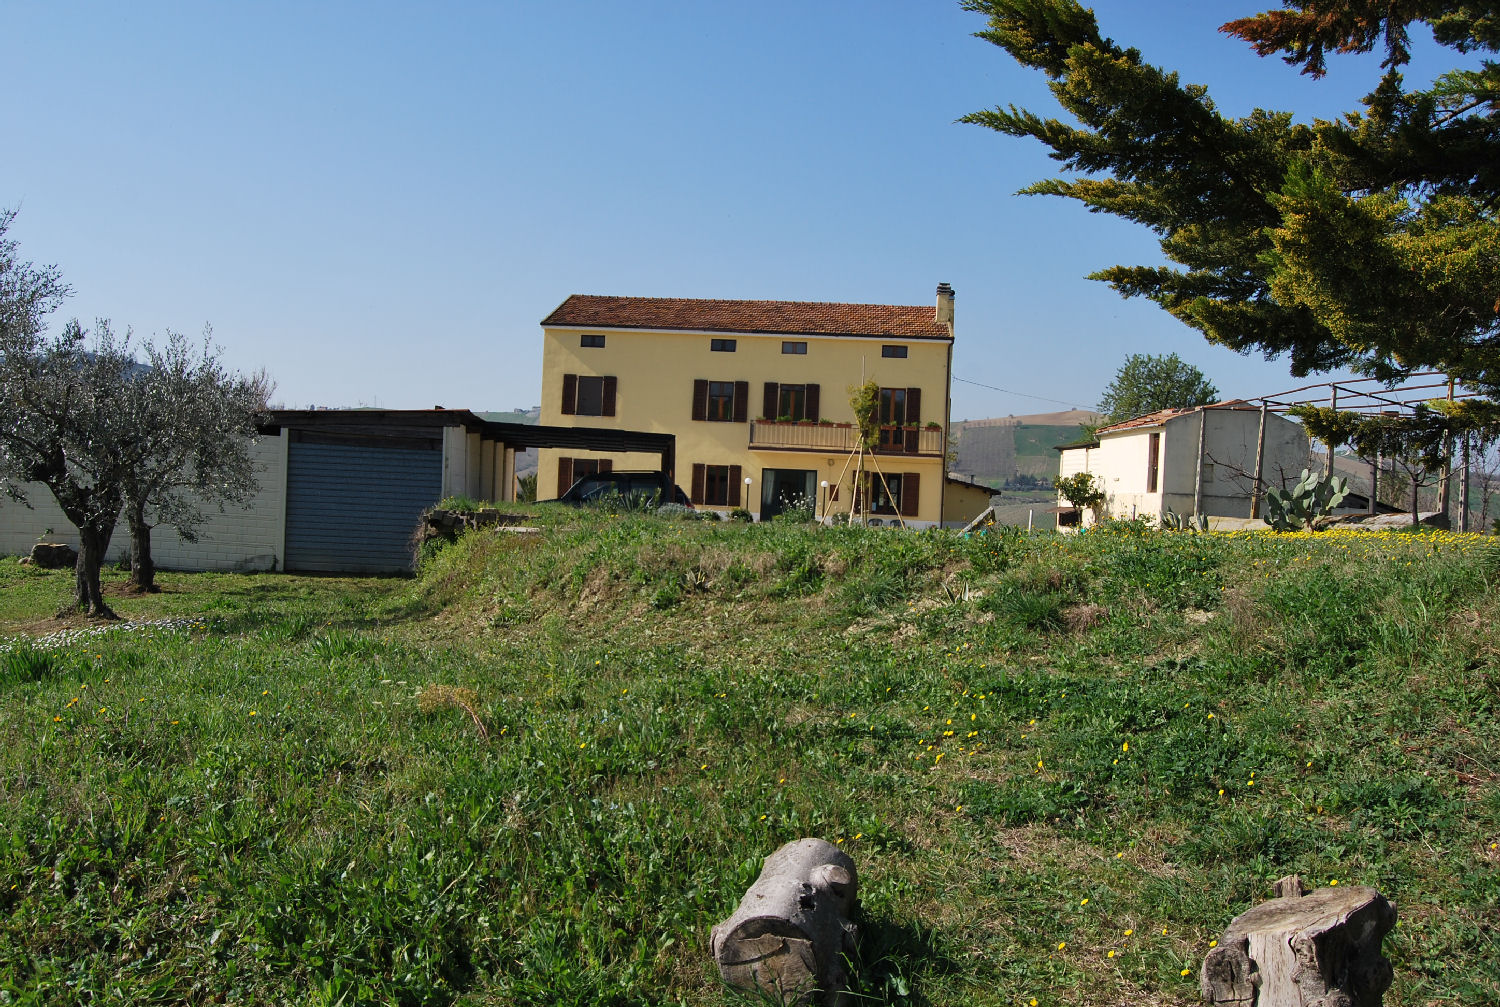 Country house with 5 hectares of land and potential for a small campsite